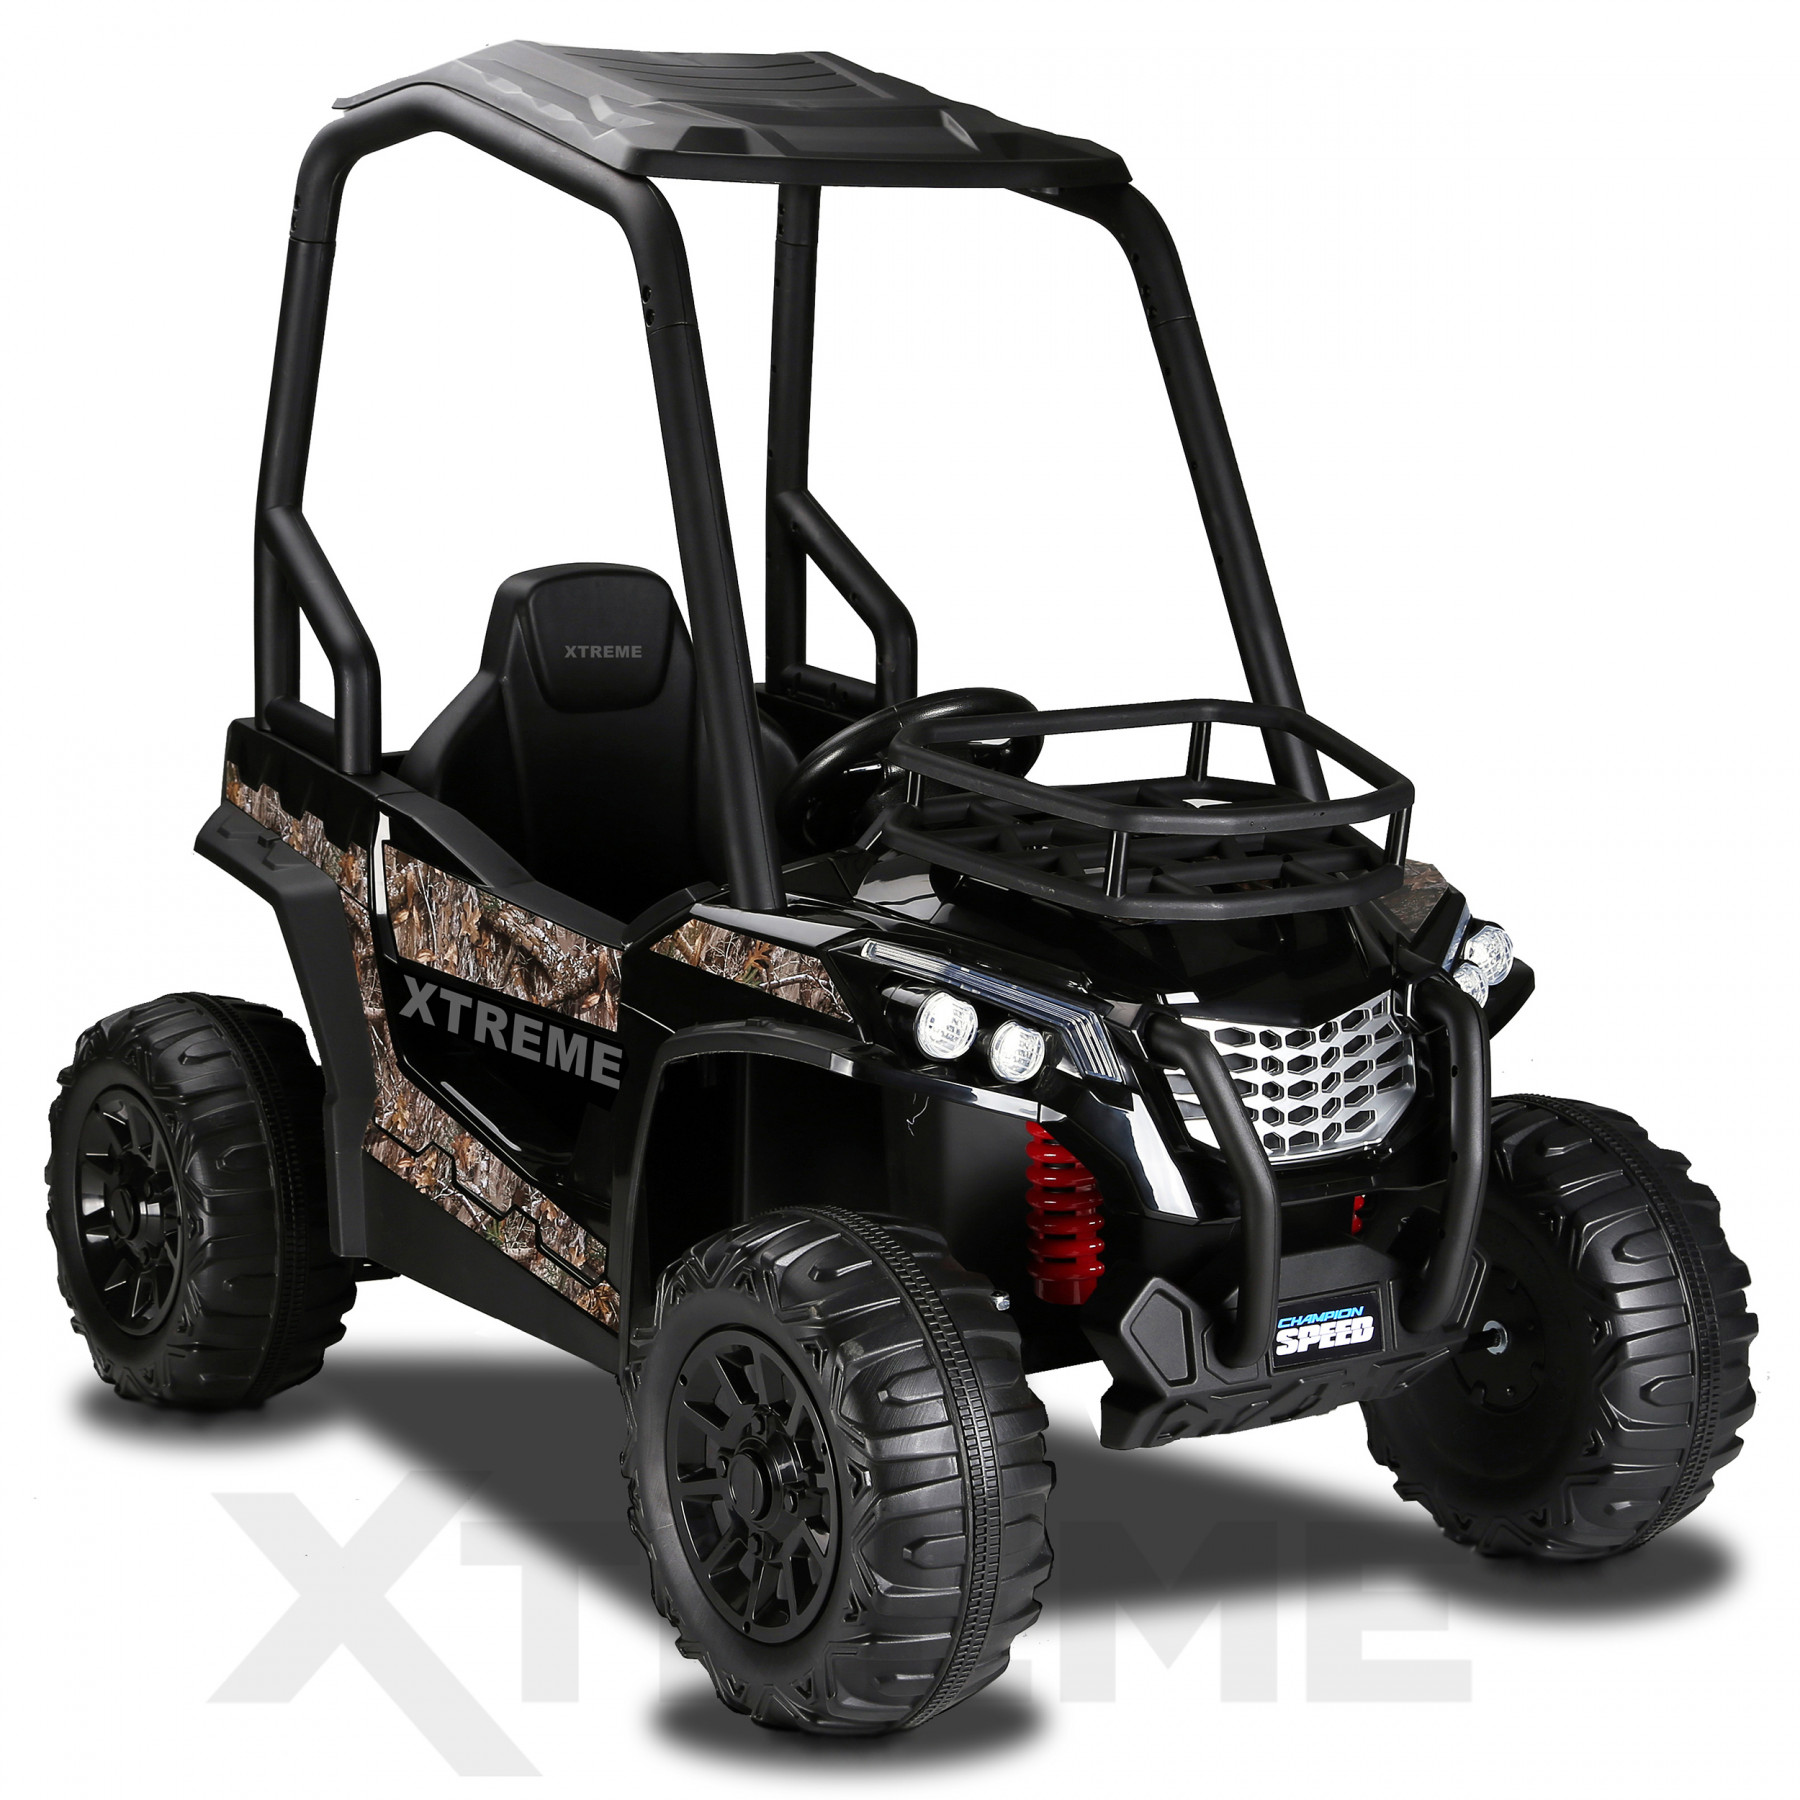 Xtreme BIG 12v Ride on Buggy Off Road UTV Jeep With Roll Cage Black